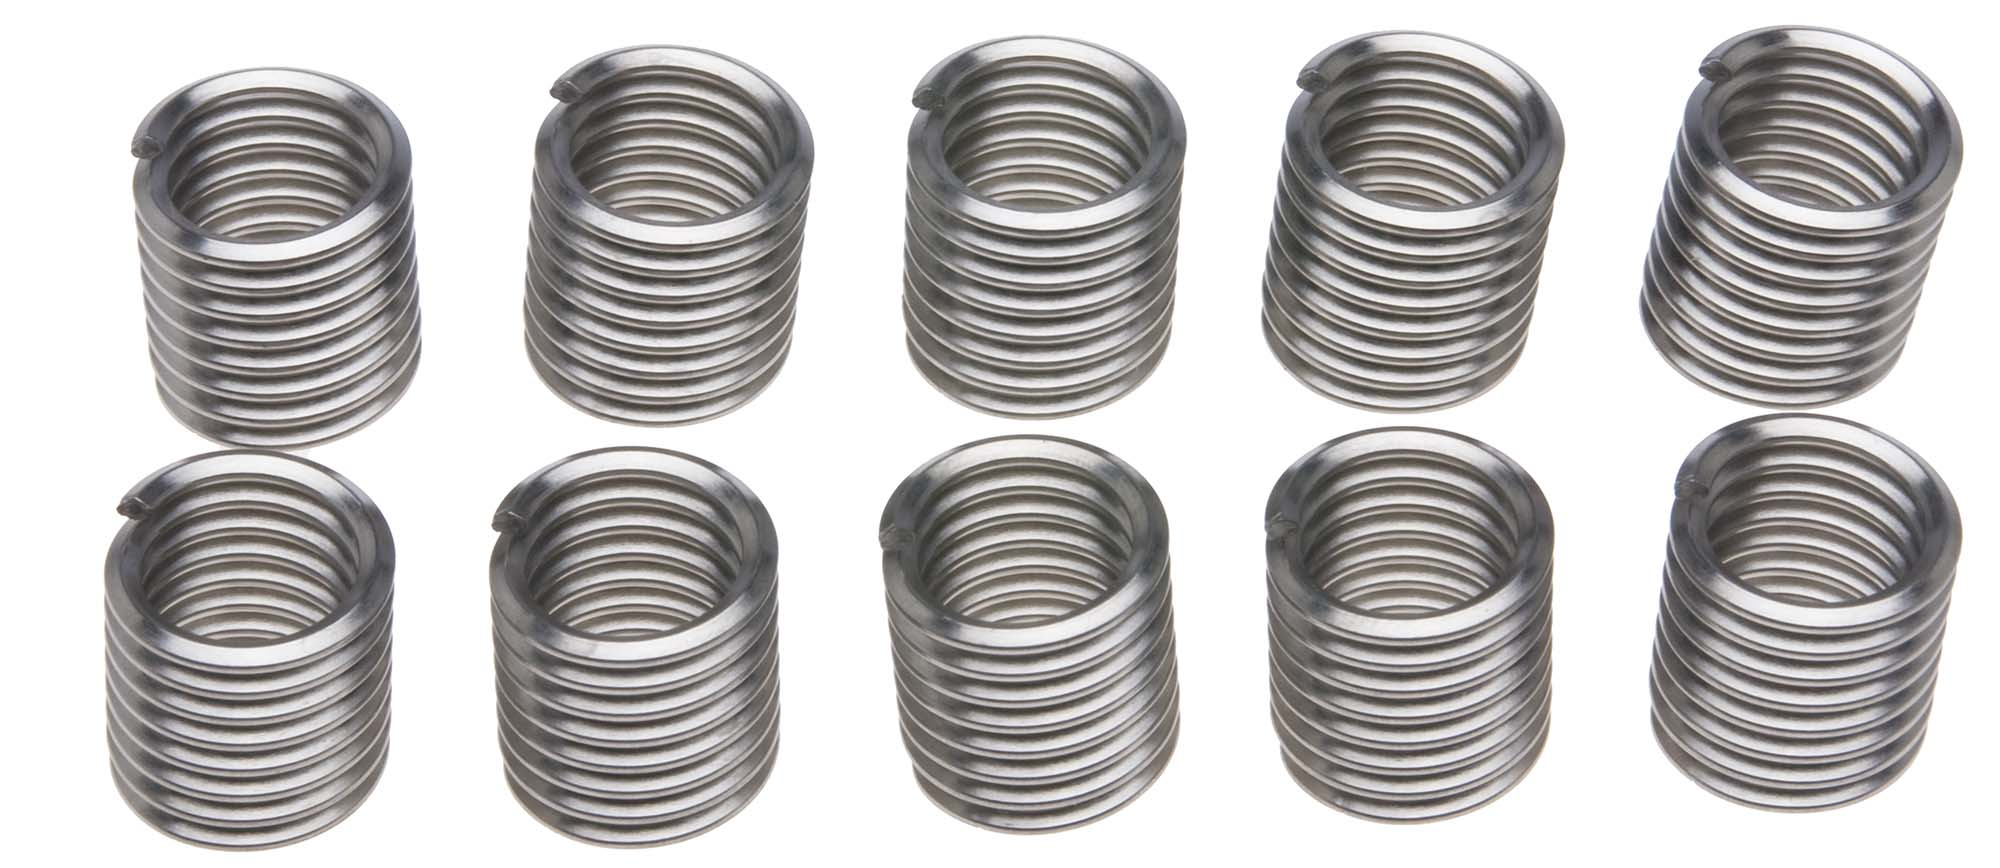 "1/4""-28 Recoil Insert Pack of 10"